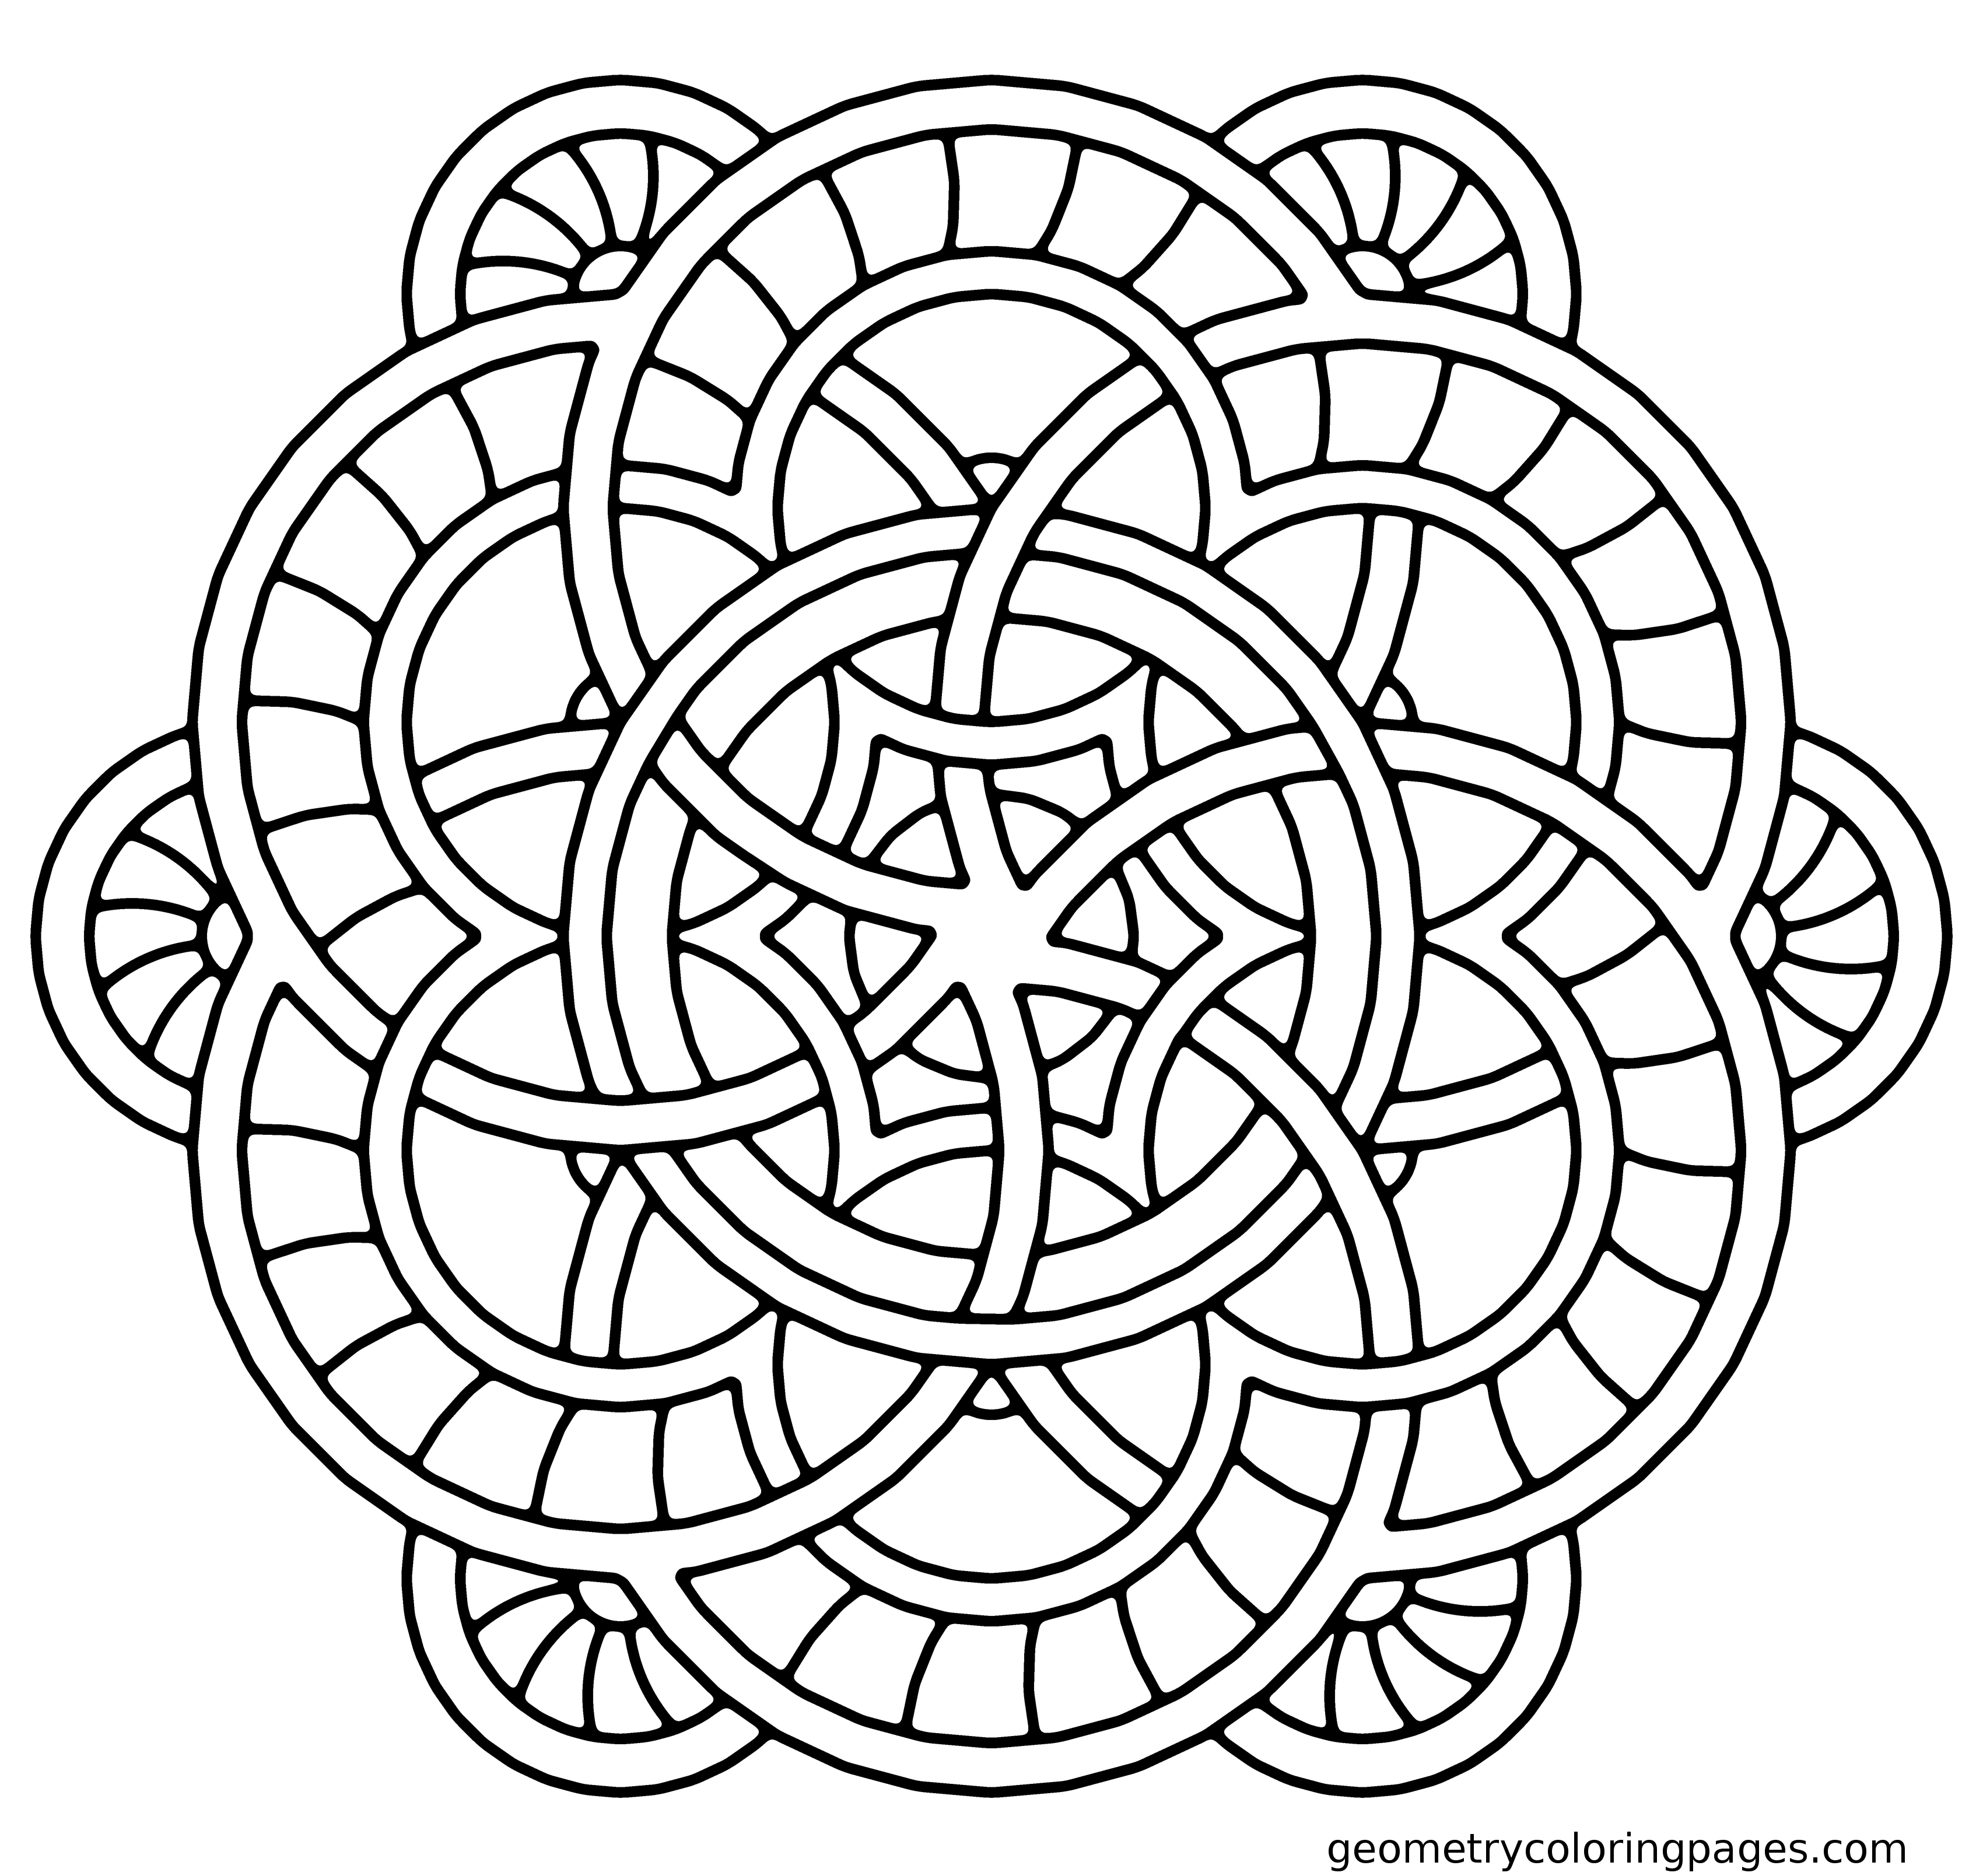 3400x3217 Mandala Coloring Pages Online